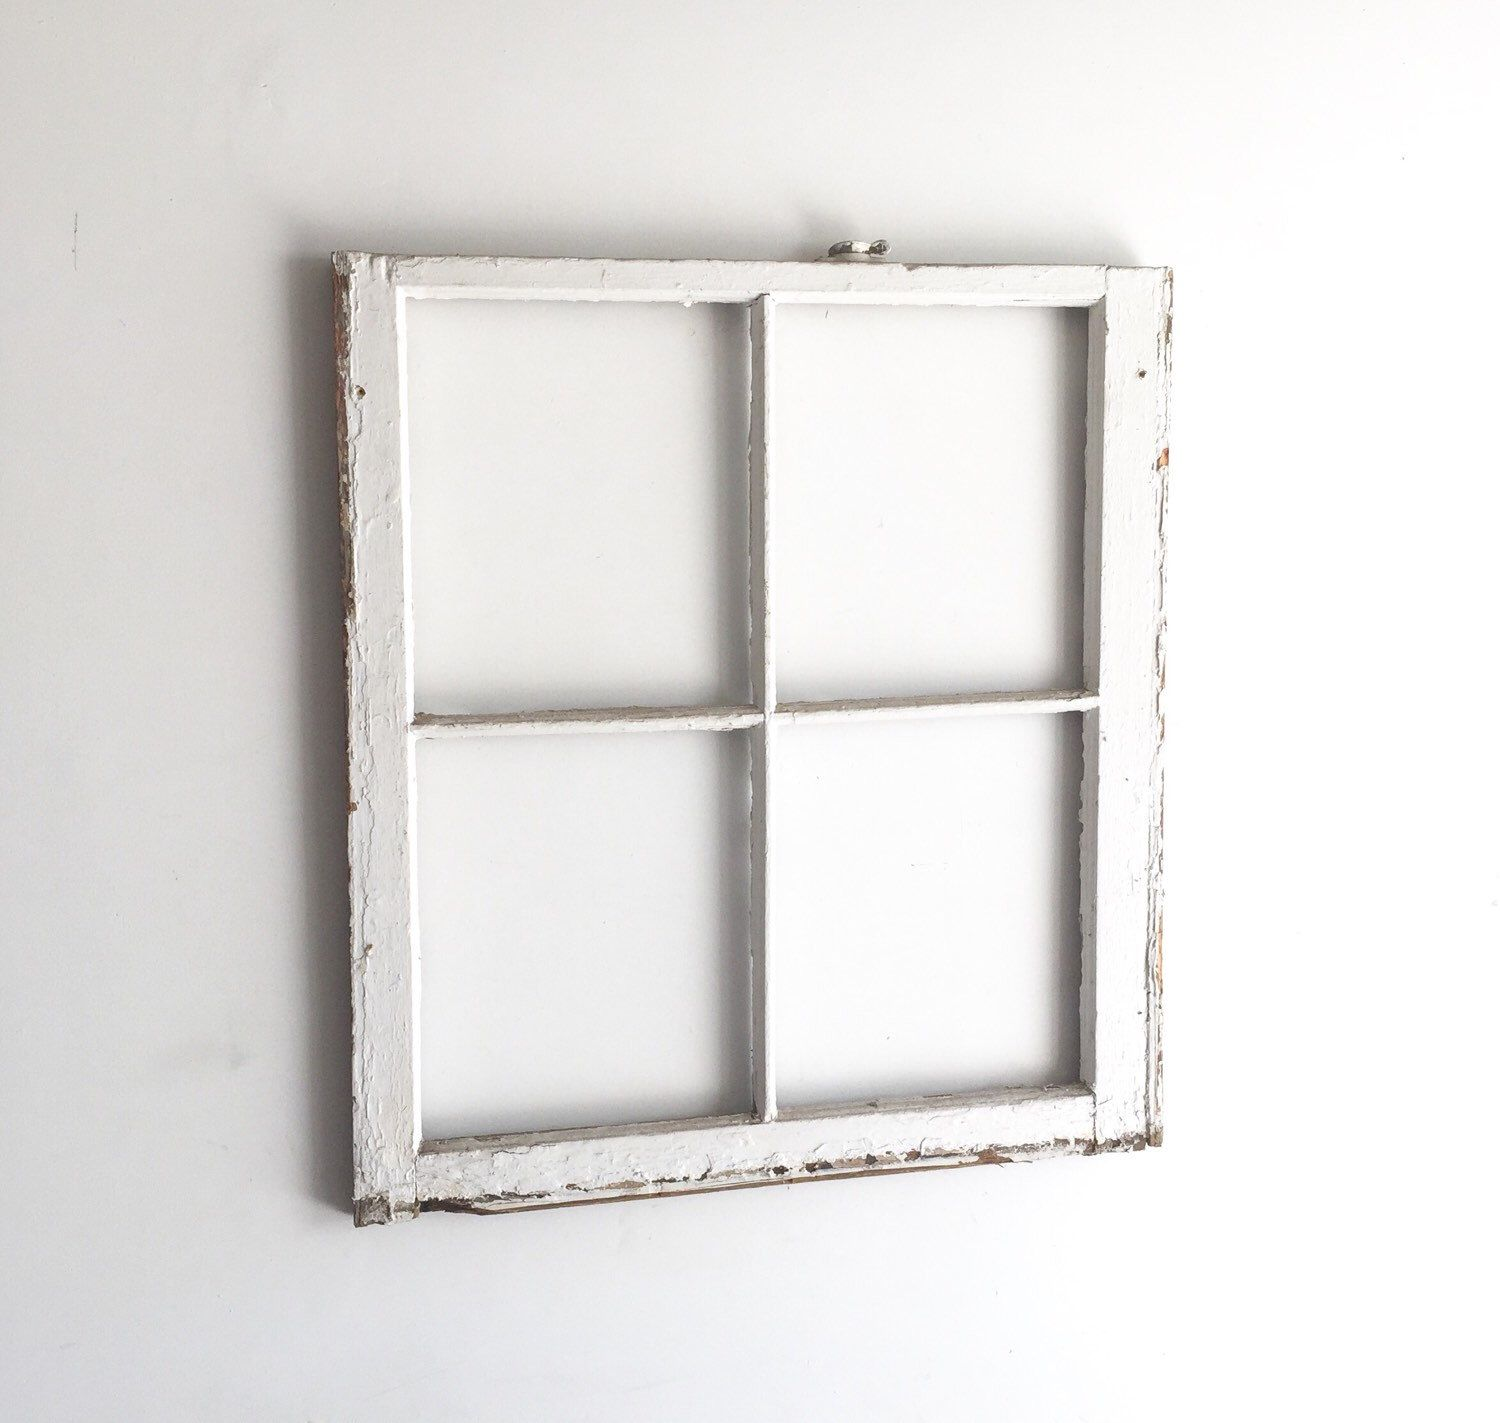 No Glass Vintage 4 Pane Window Frame 28 X 32 White Rustic Beach Antique Wood Wedding Home Picture Holiday Decor Window Frame Frame Vintage Windows